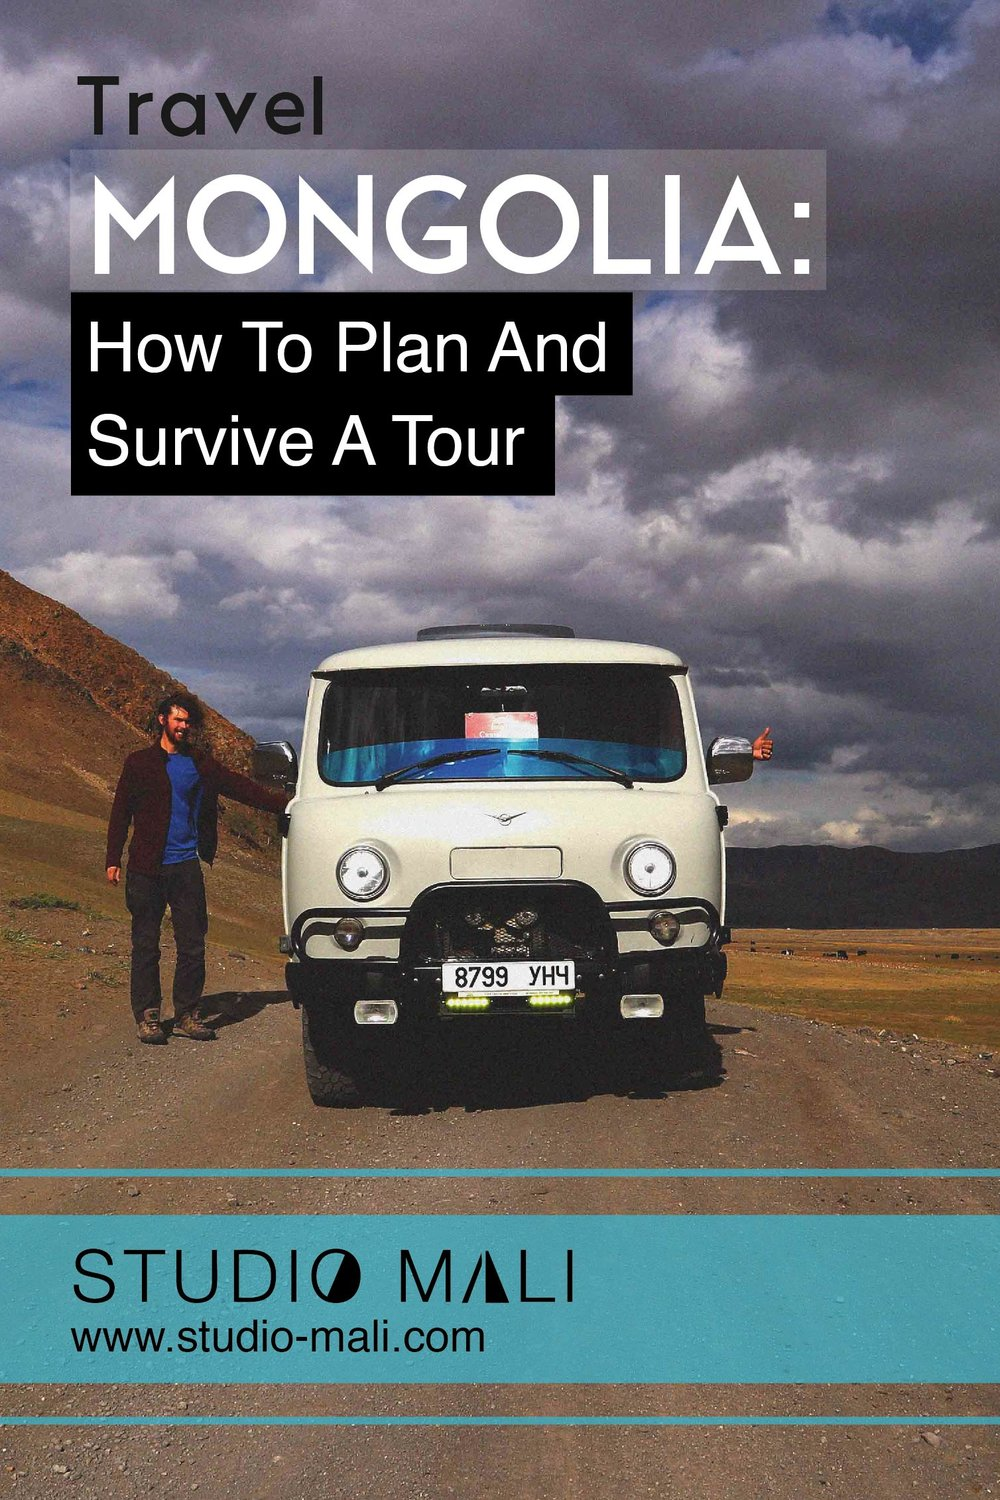 Mongolia - How To Plan And Survive A Tour, by Studio Mali